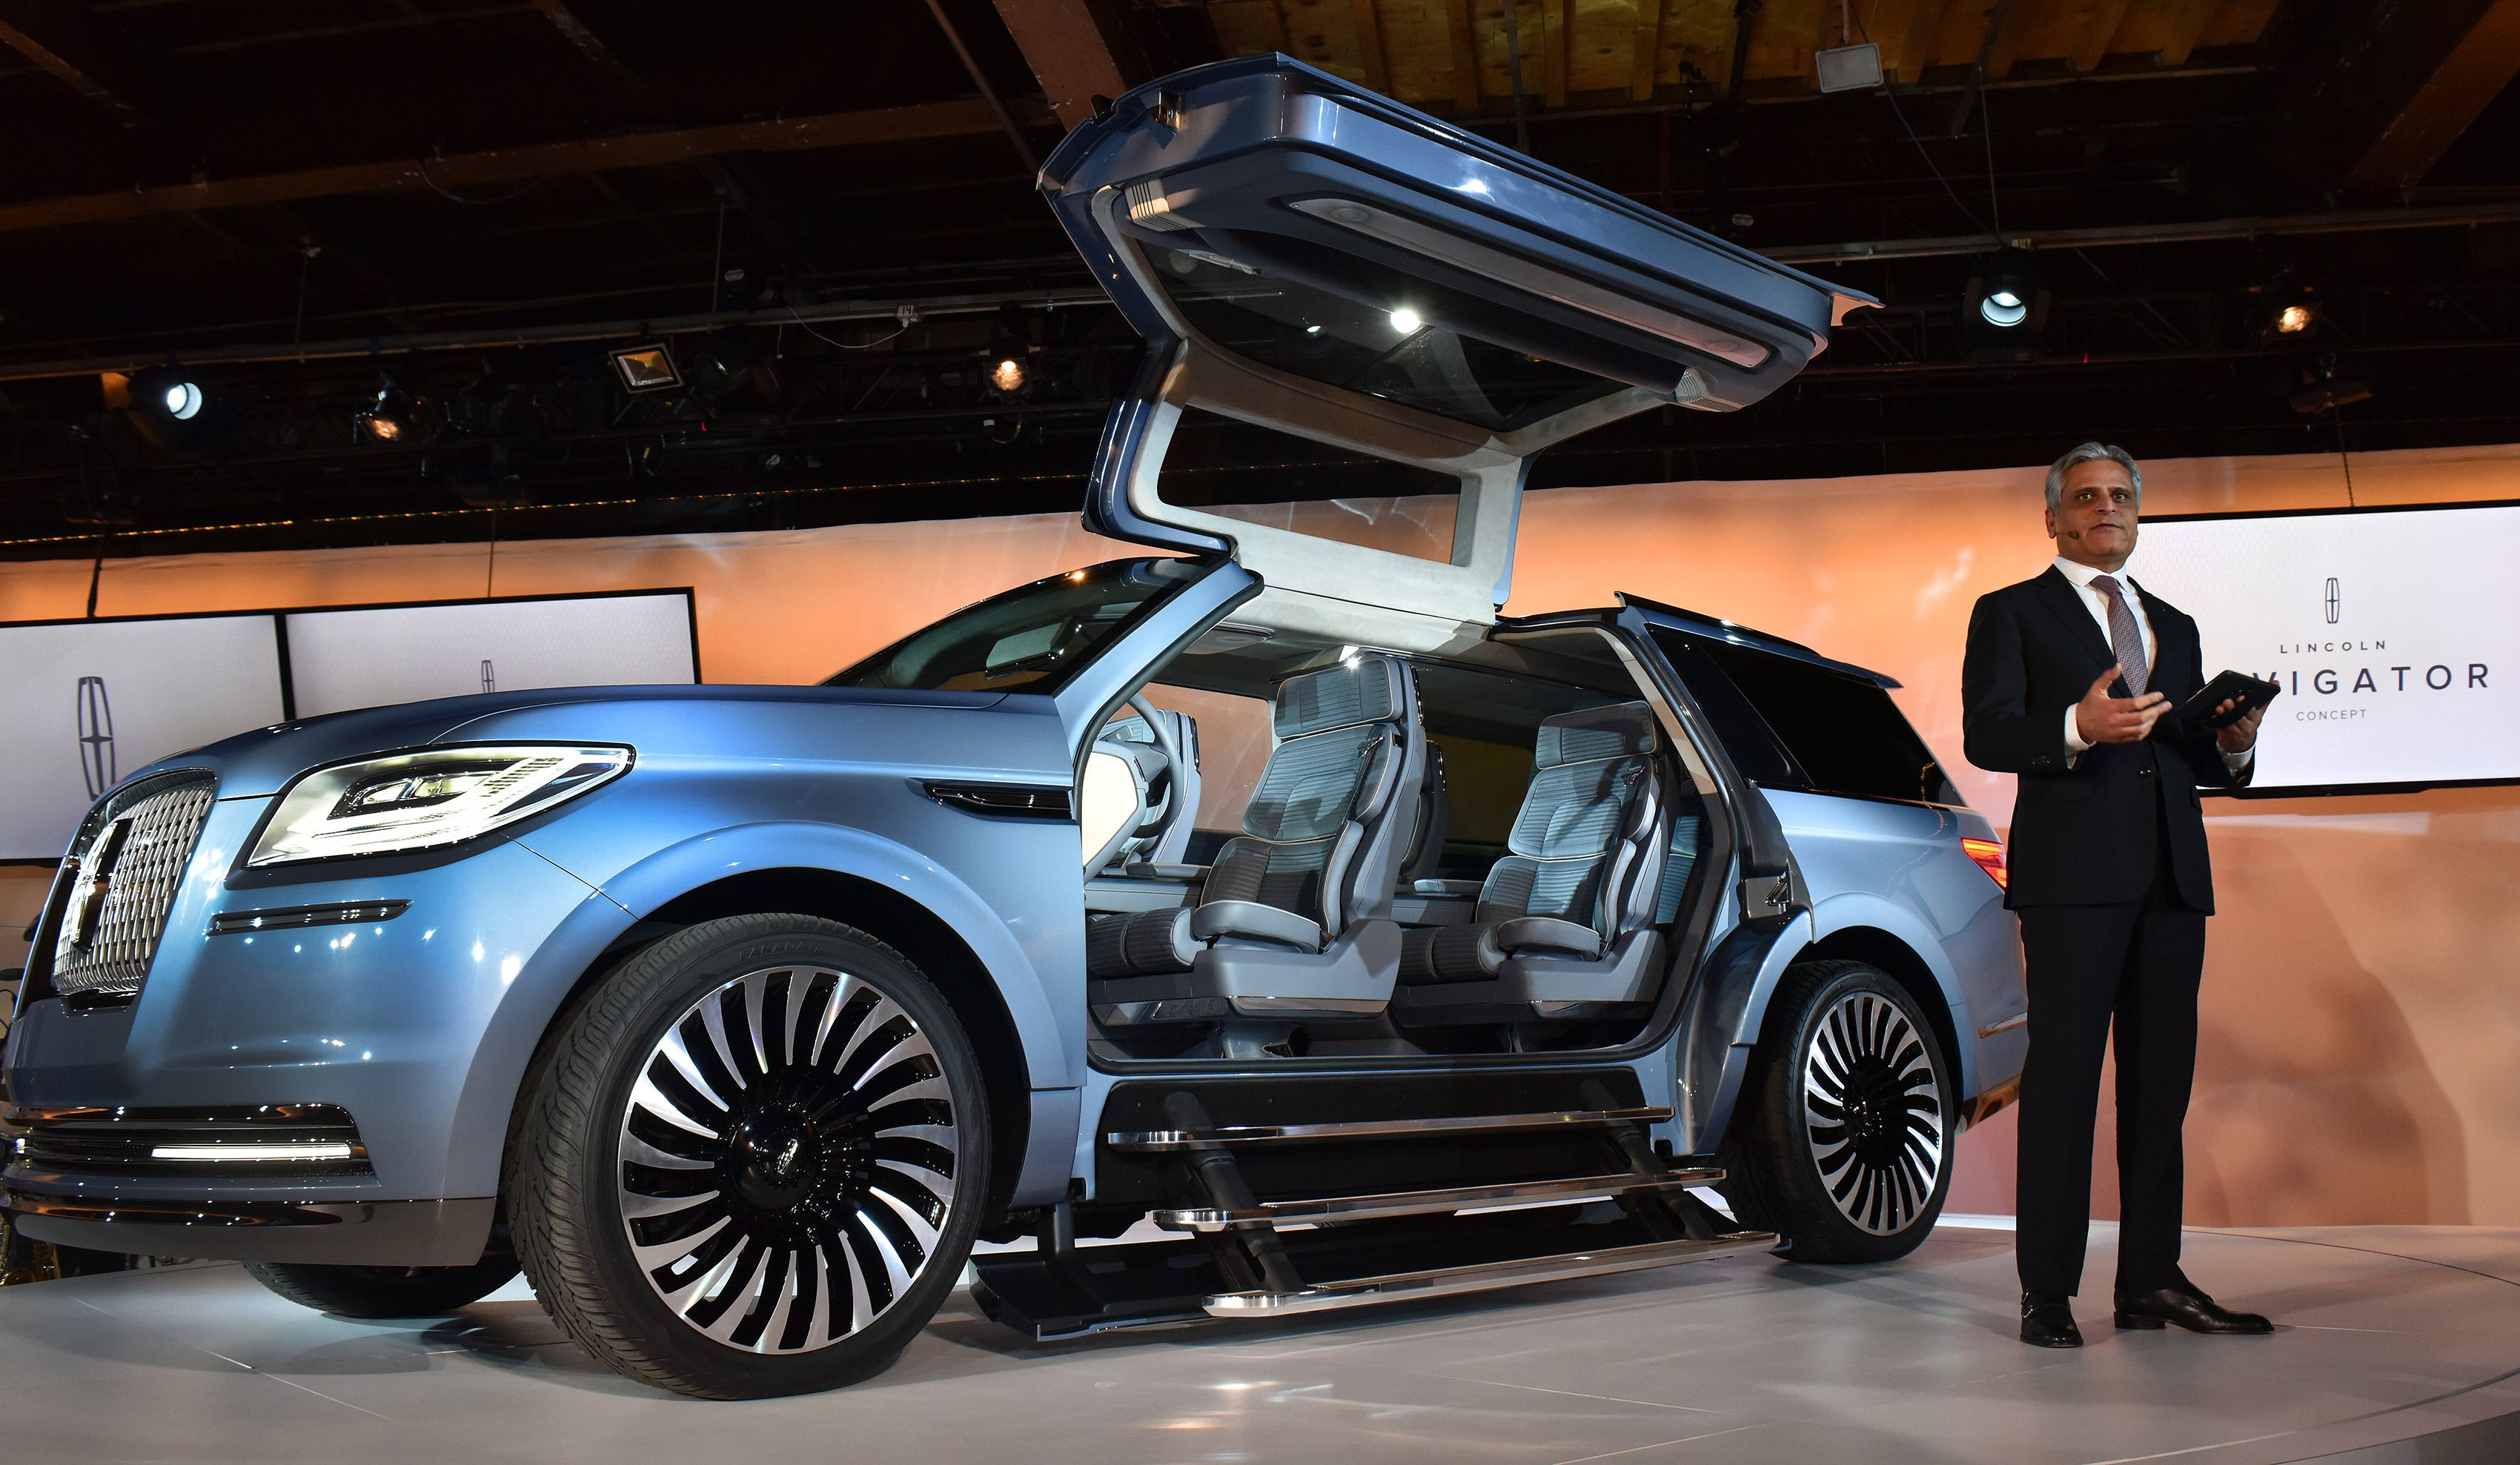 & Lincoln debuts Navigator Concept with gull-wing doors